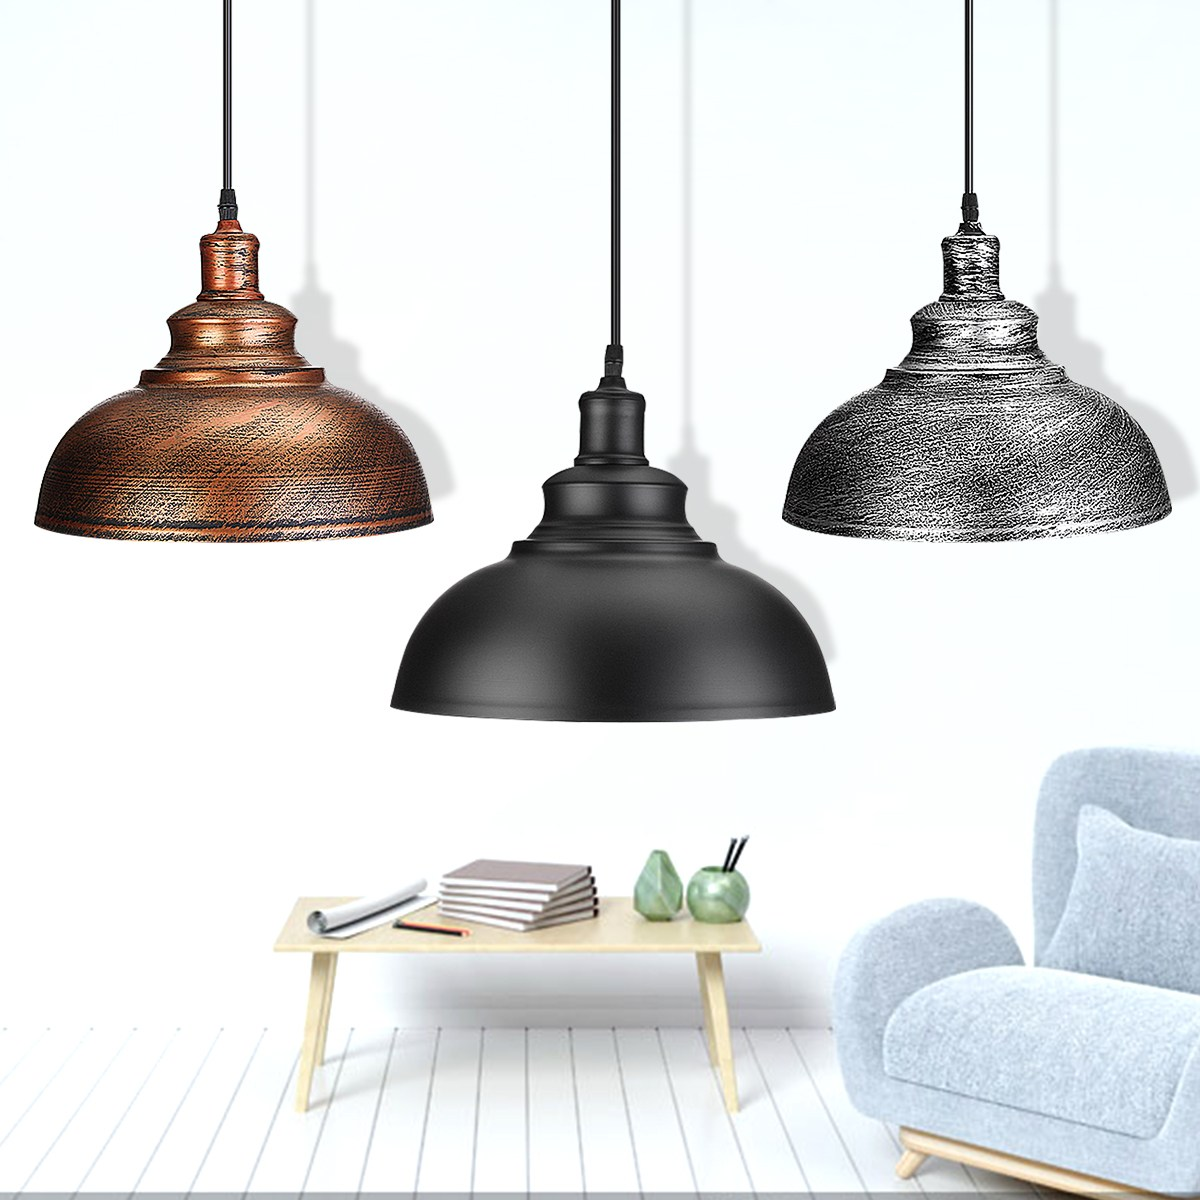 Modern 3 Style Pendant Lights Hanging E27 Edison Bulb Night Lamp Fixture Loft Bar Living Room Home Decor Novelty Lighting battlefield 3 или modern warfare 3 что